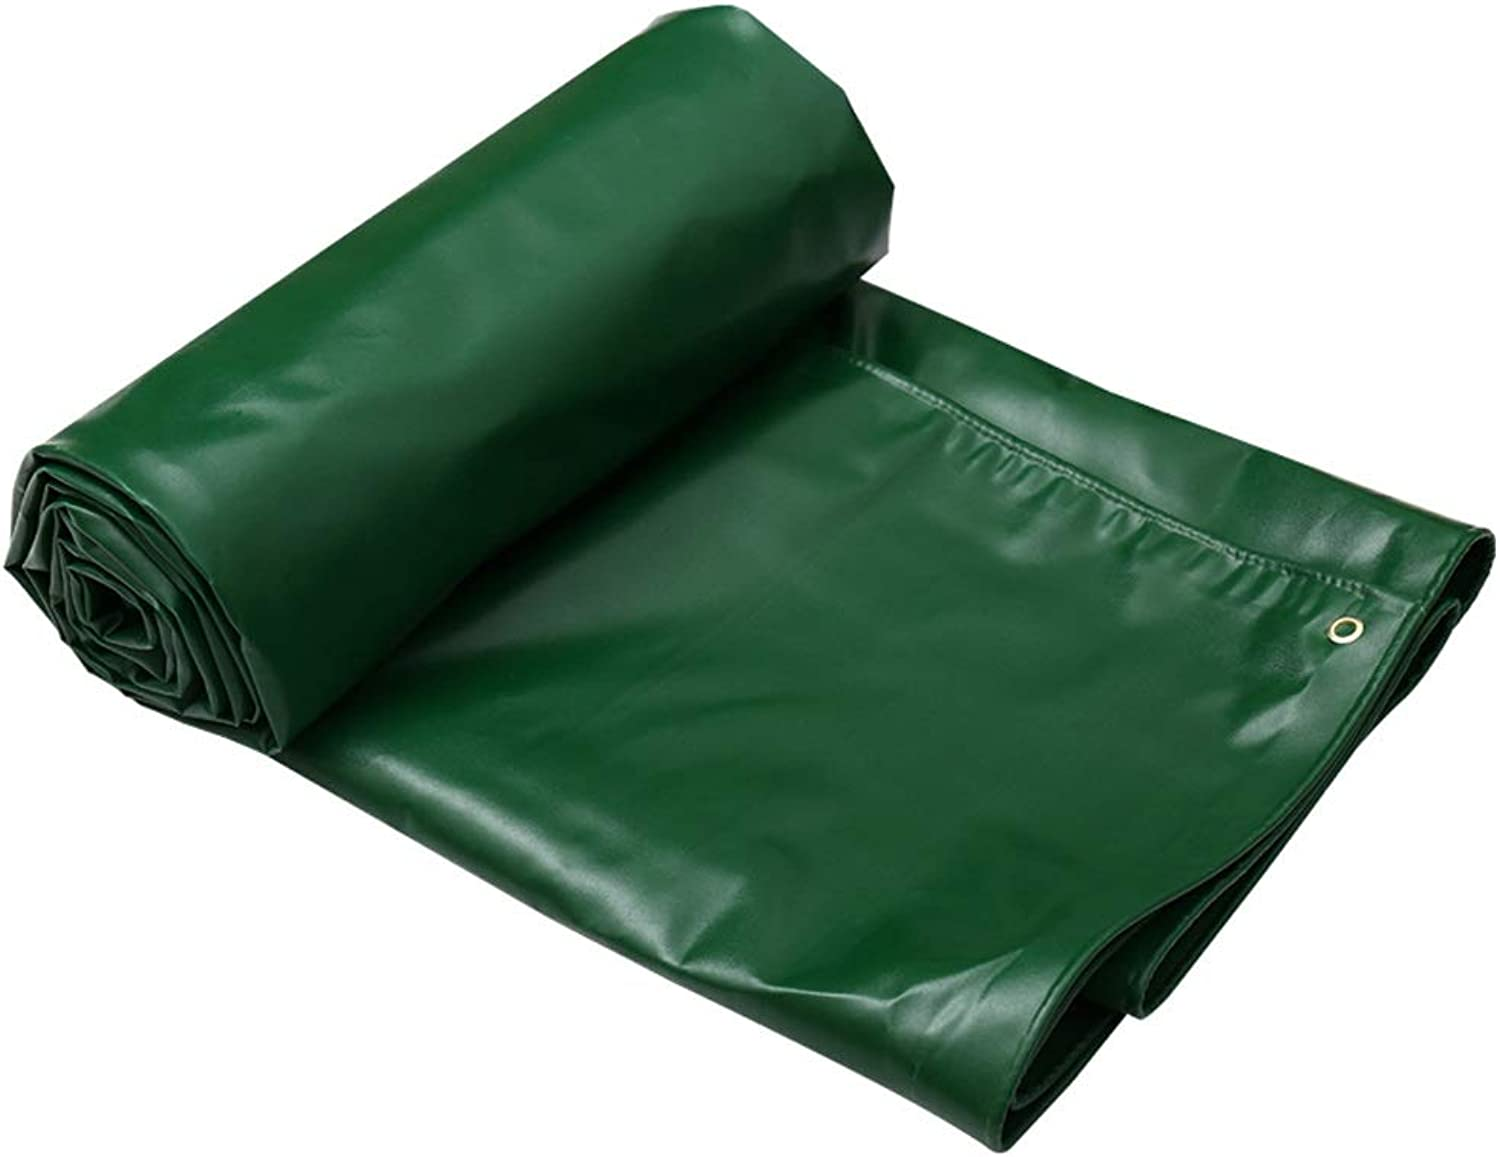 Jia He Tarpaulin Thicken Waterproof Cloth Waterproof Sunscreen Awning Cloth Truck Tarpaulin Tarpaulin Outdoor Canvas DoubleSided Waterproof, Green, 7 Sizes @@ (Size   4mX3m)